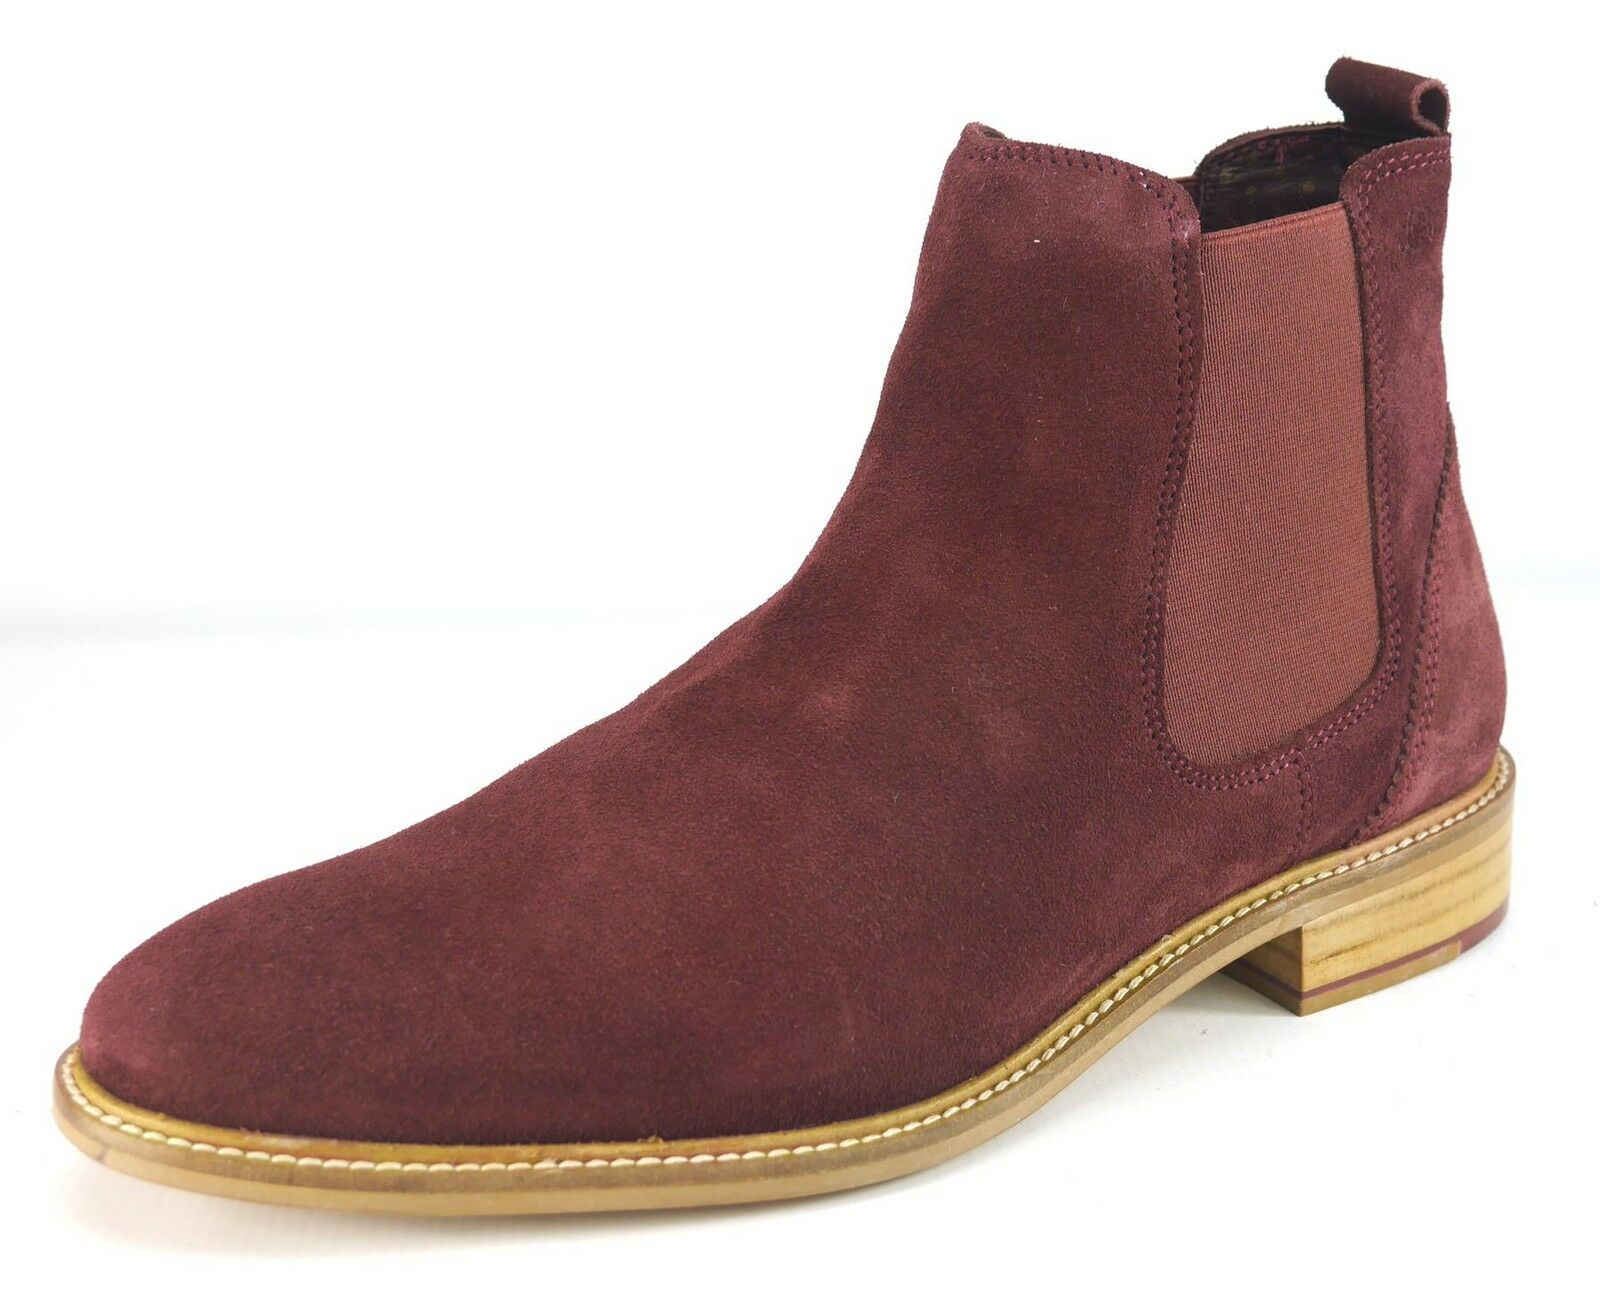 London Brogues Hamilton Suede Pull On Chelsea Boots Mens Bordo Suede